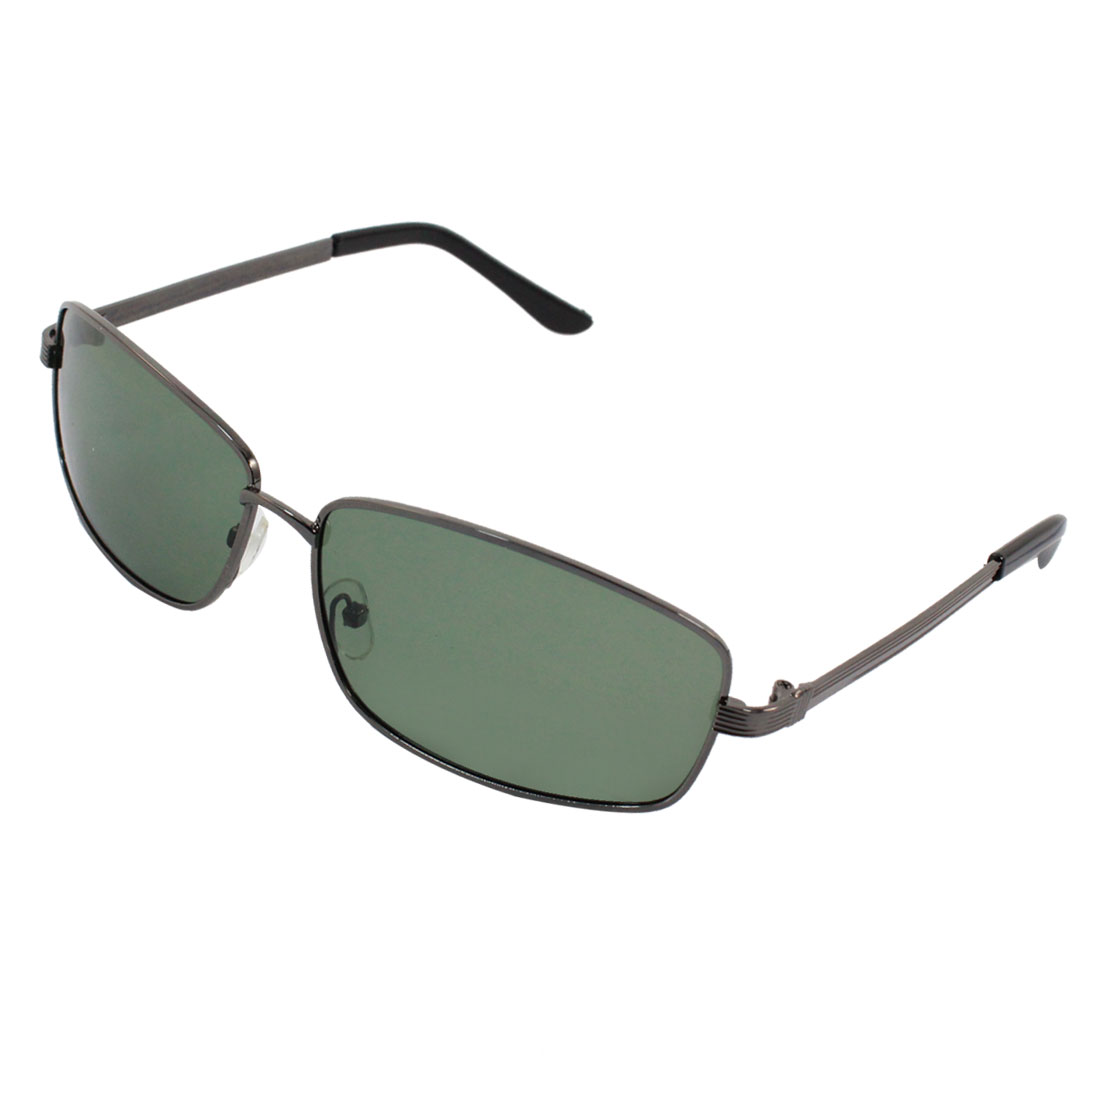 Unisex Rectangle Gray Metal Single Bridge Full Frame Polarized Sunglasses w Case